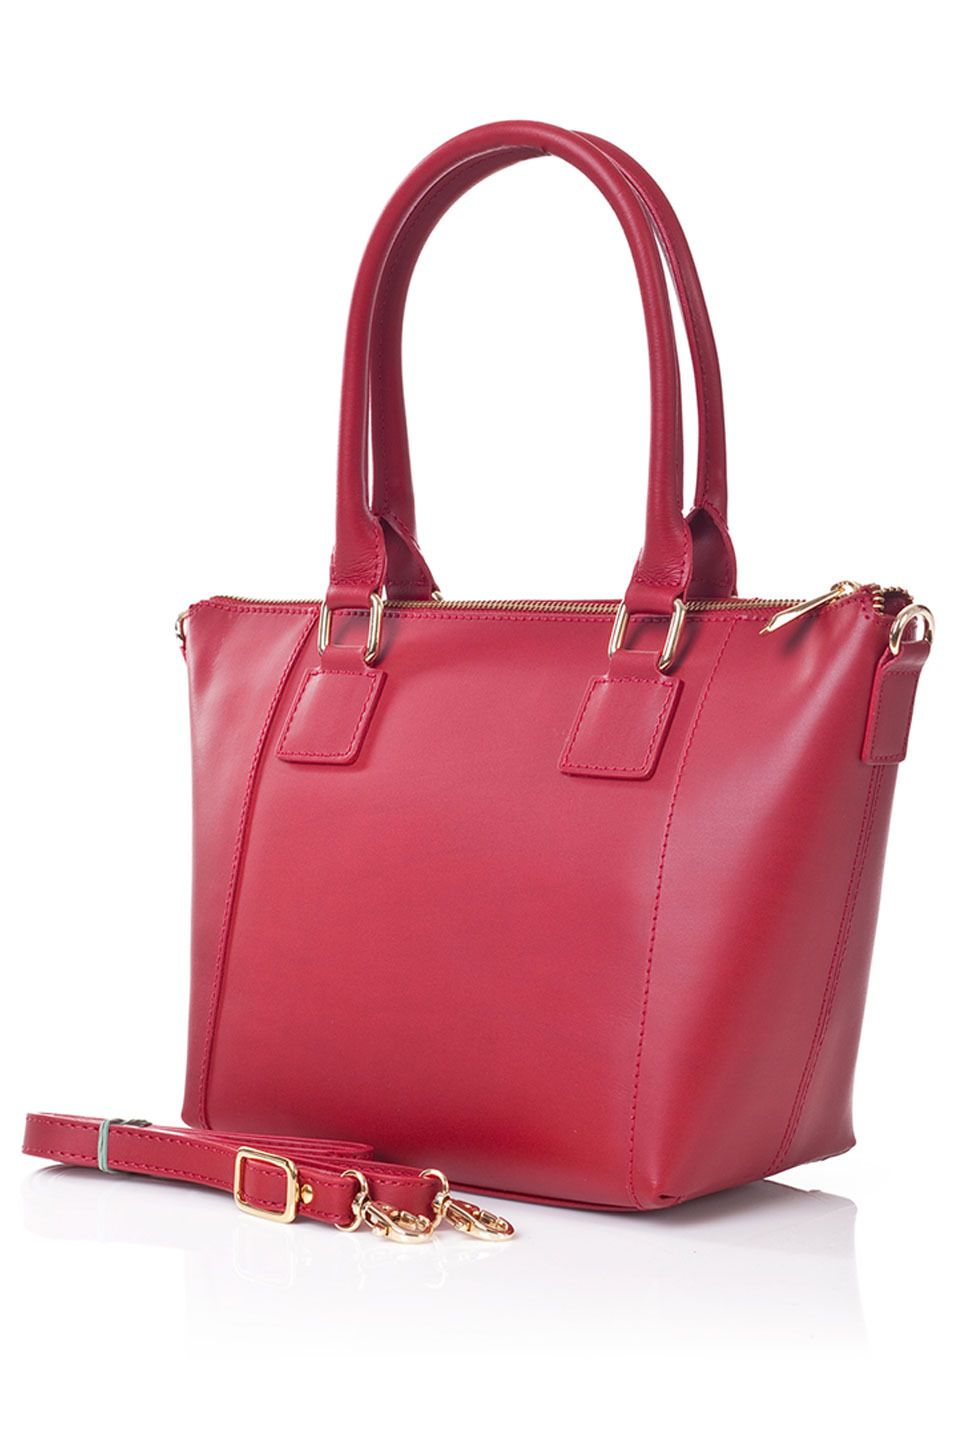 Gianni Conti Chloe Handbag In Red Beyond The Rack